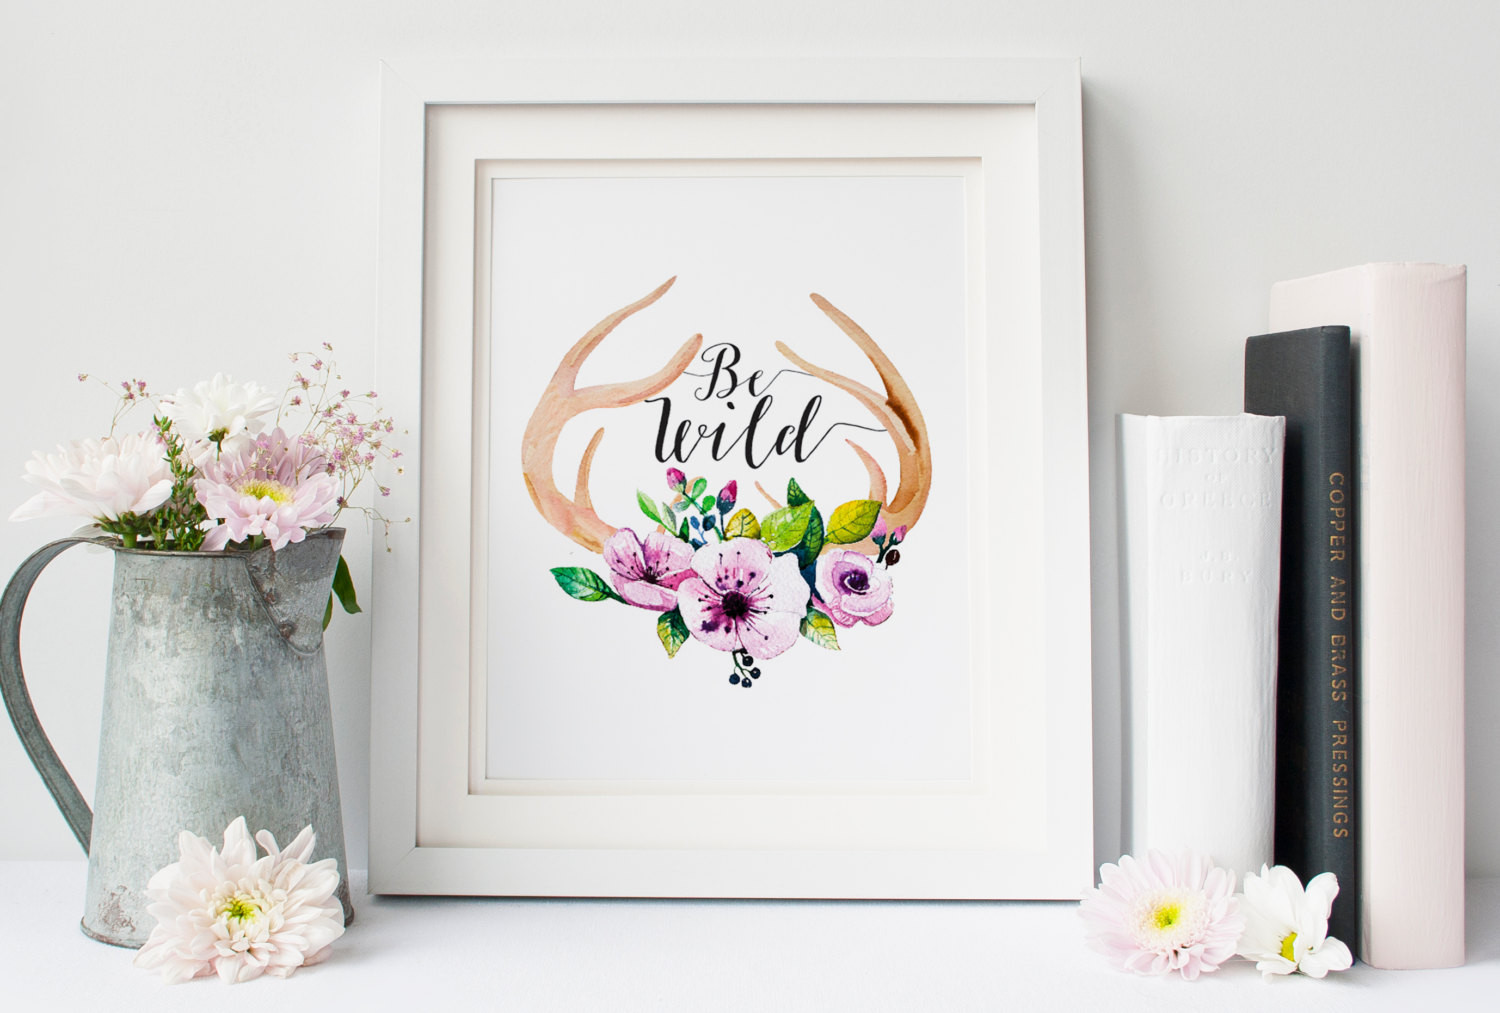 Best ideas about Boho Wall Art . Save or Pin Be Wild Boho wall decor Antler wall art inspirational quote Now.